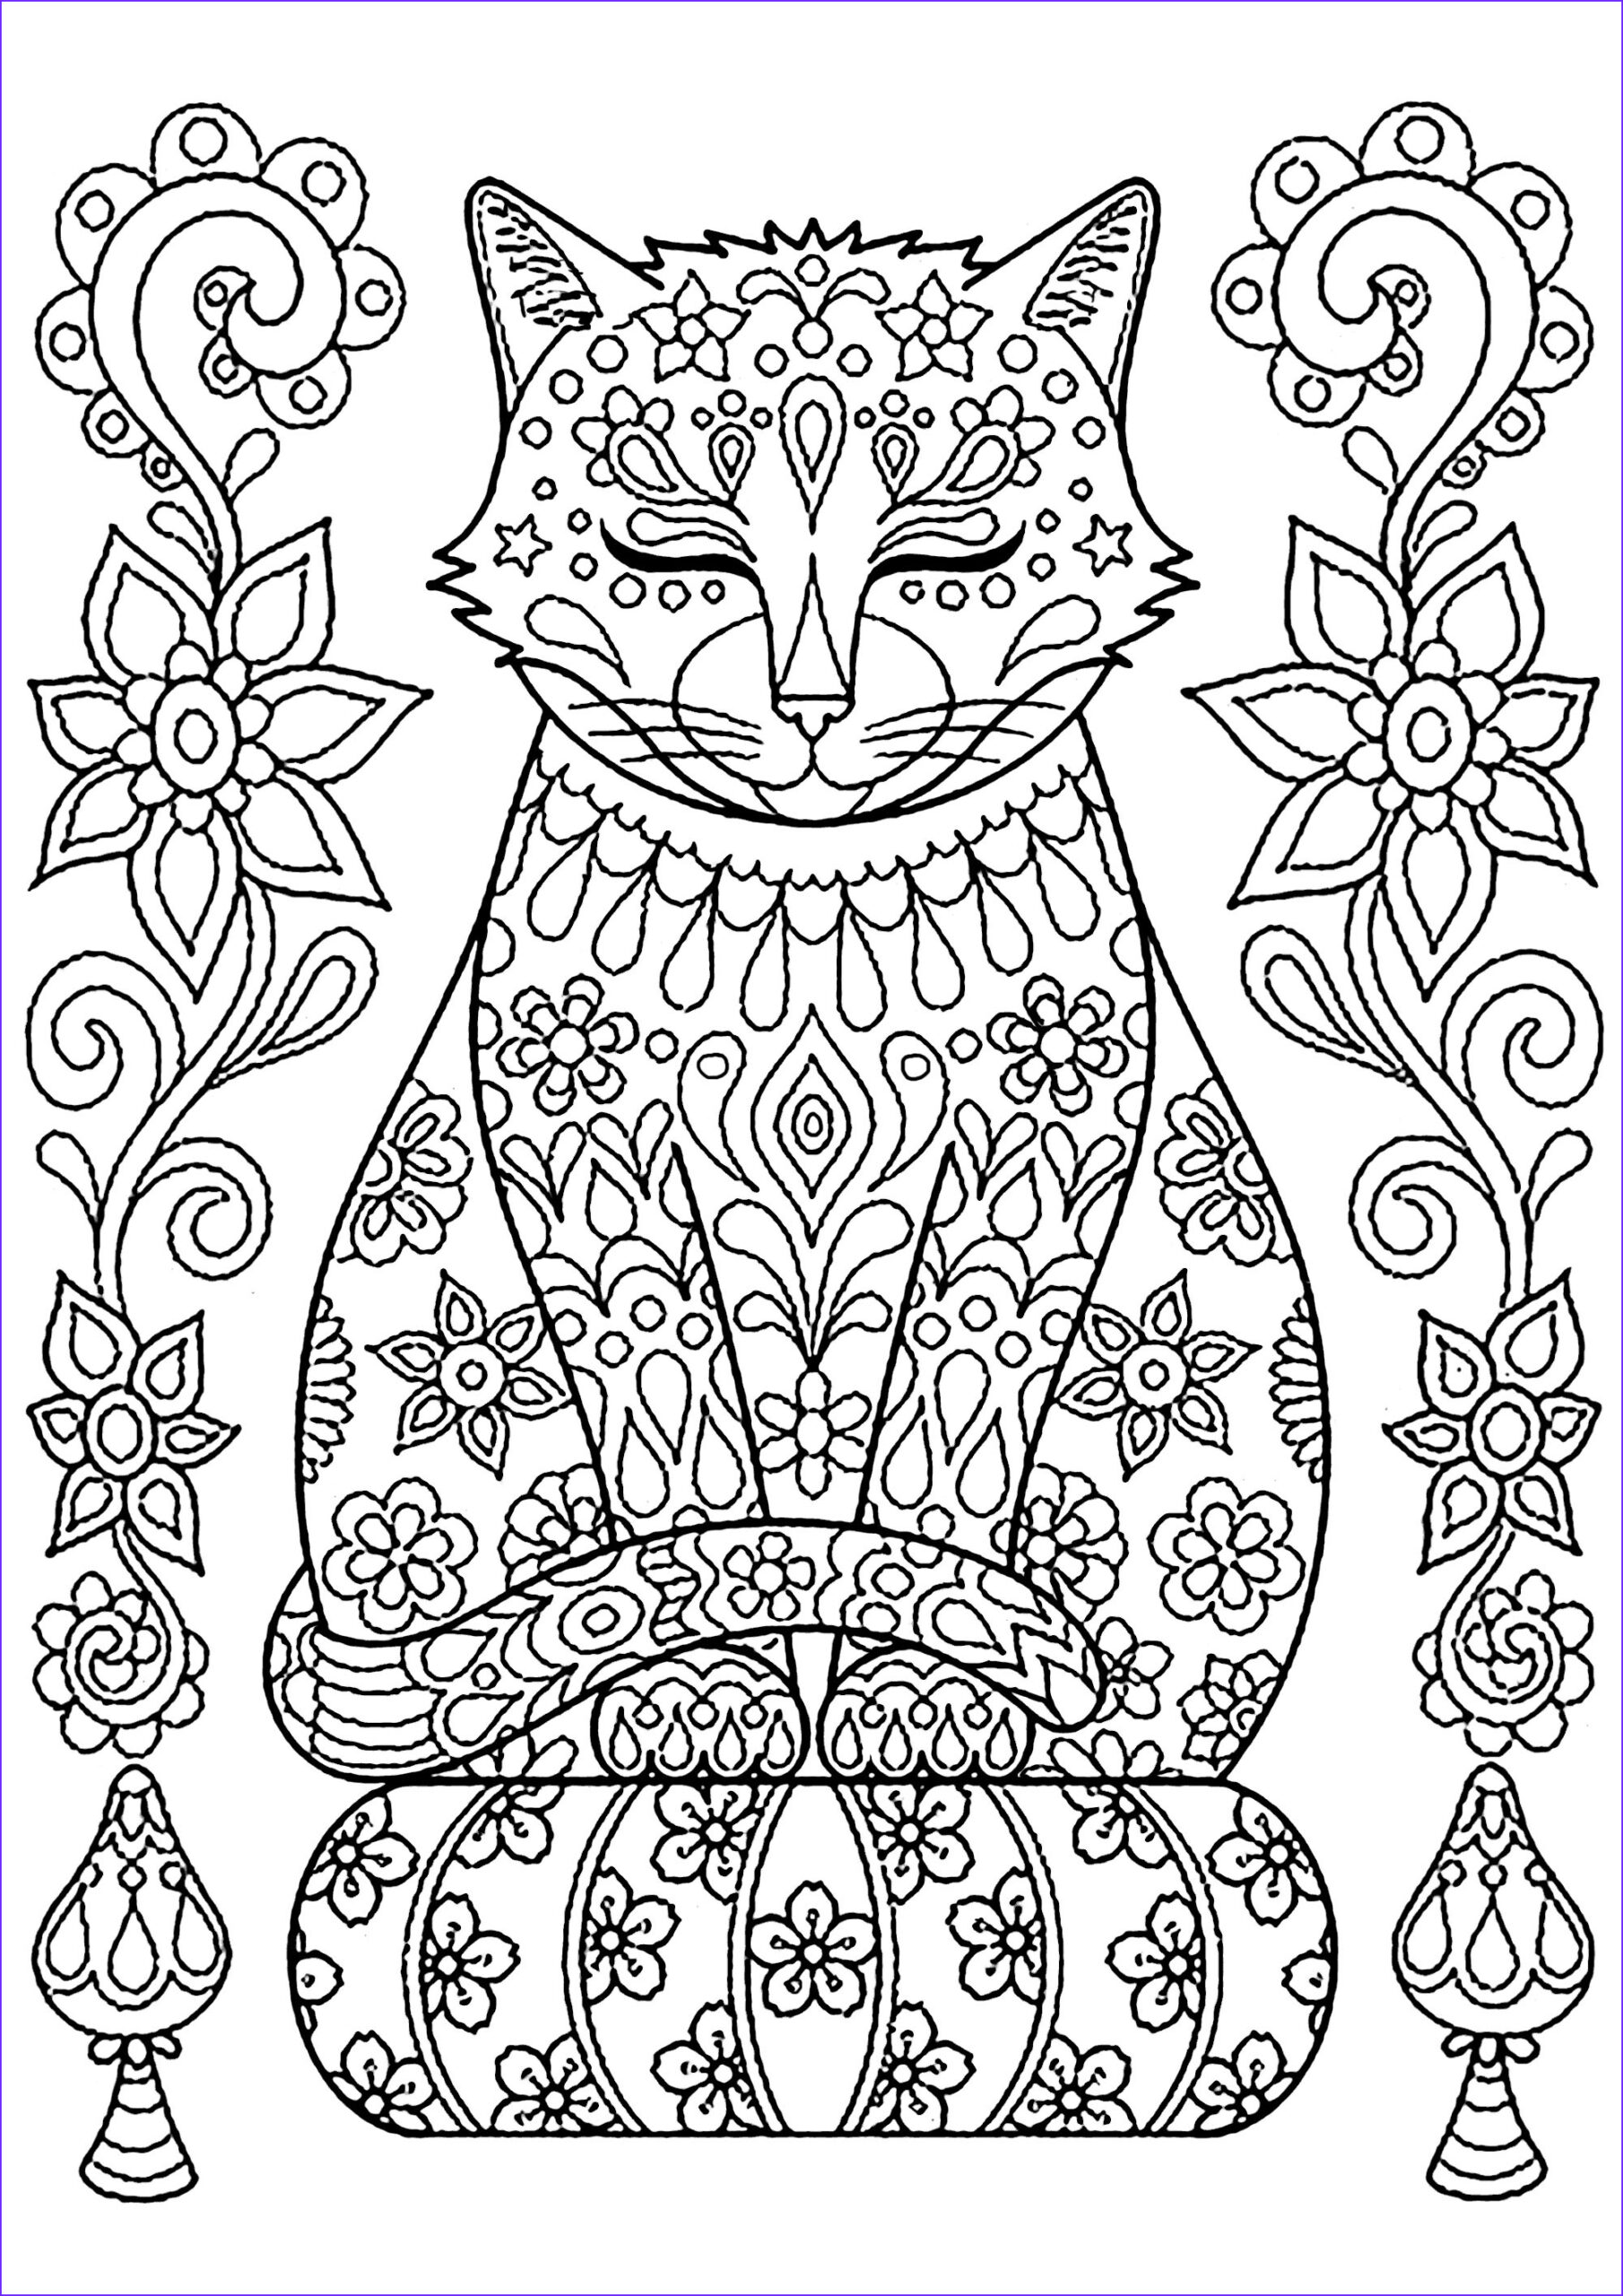 Adult Cat Coloring Pages Beautiful Photos Cute Cat On Pillow with Flowers Cats Adult Coloring Pages